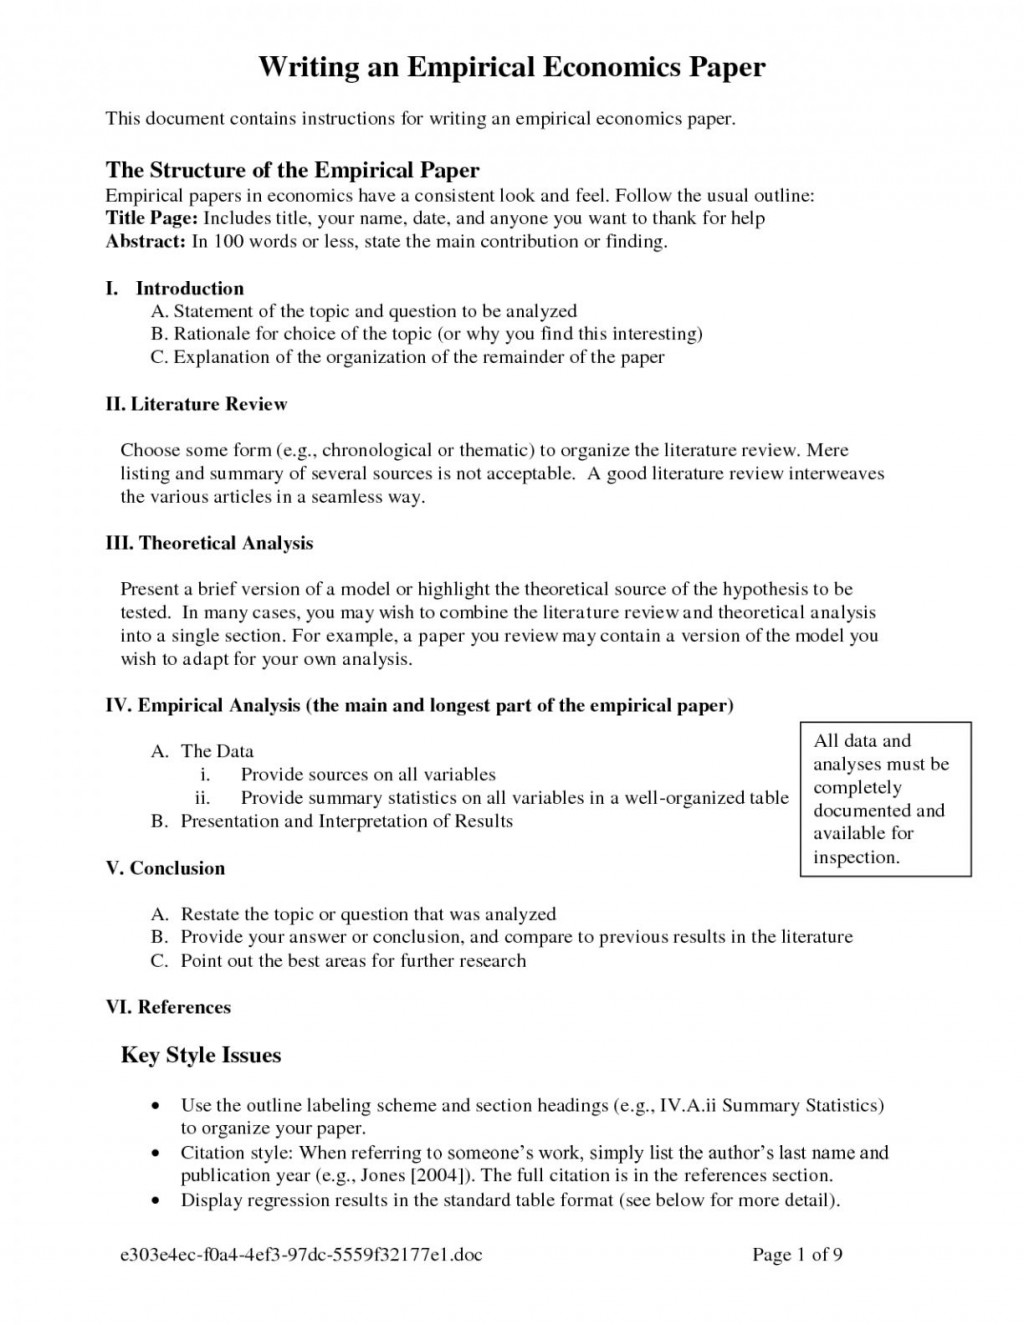 017 Research Paper Format For Apa Style Dissertationple Essay Papers Proposal Methods Section Custom Lovely Top A Sample Outline Introduction - Template Large